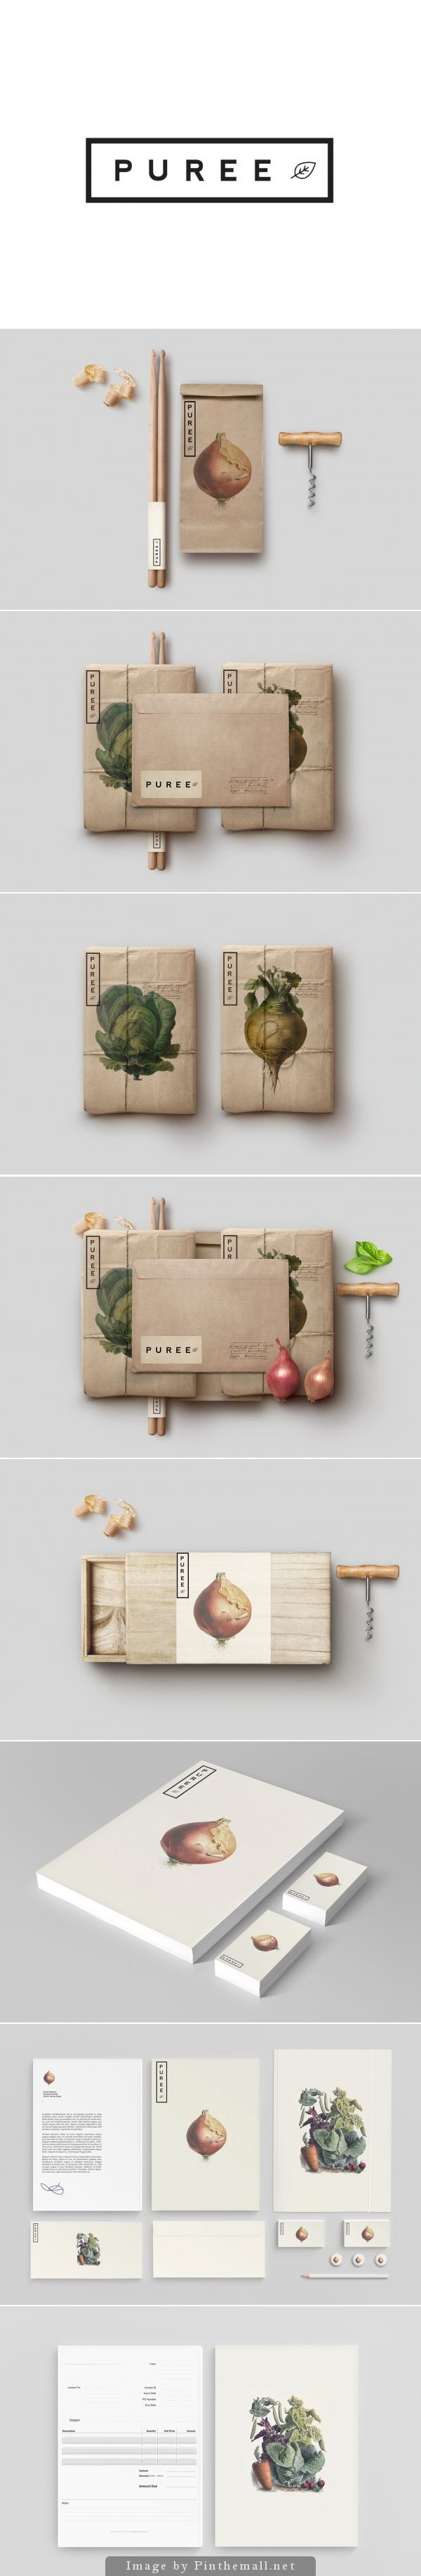 Puree Organics by Studioahamed | Branding | Pinterest